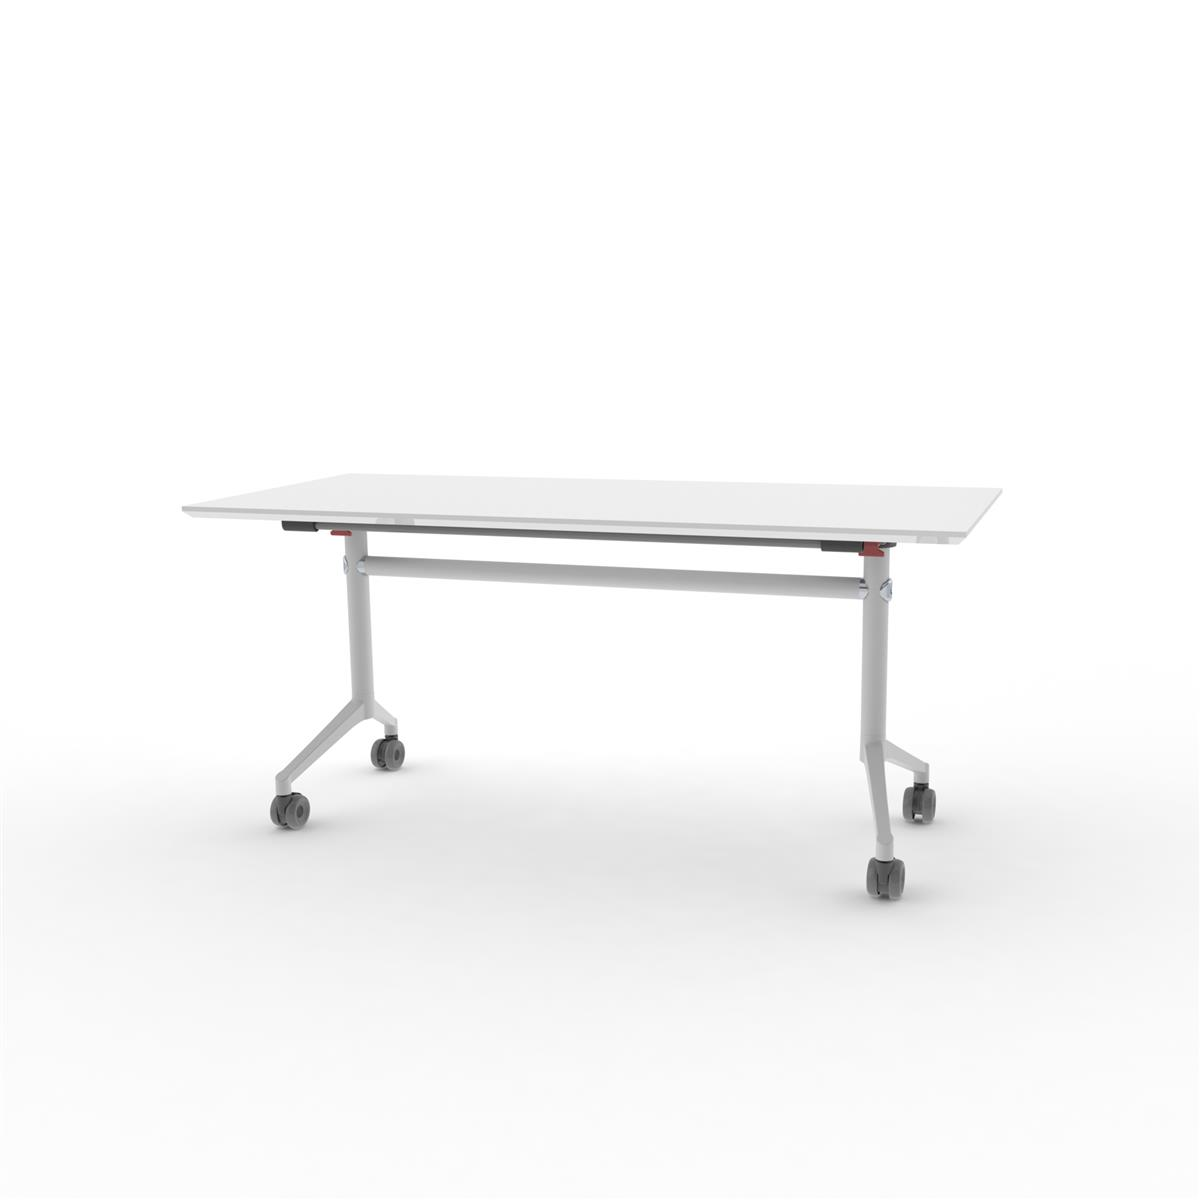 X1 Seamless Folding Table 160x70 cm med hvit bordplate og hvitlakkert understell